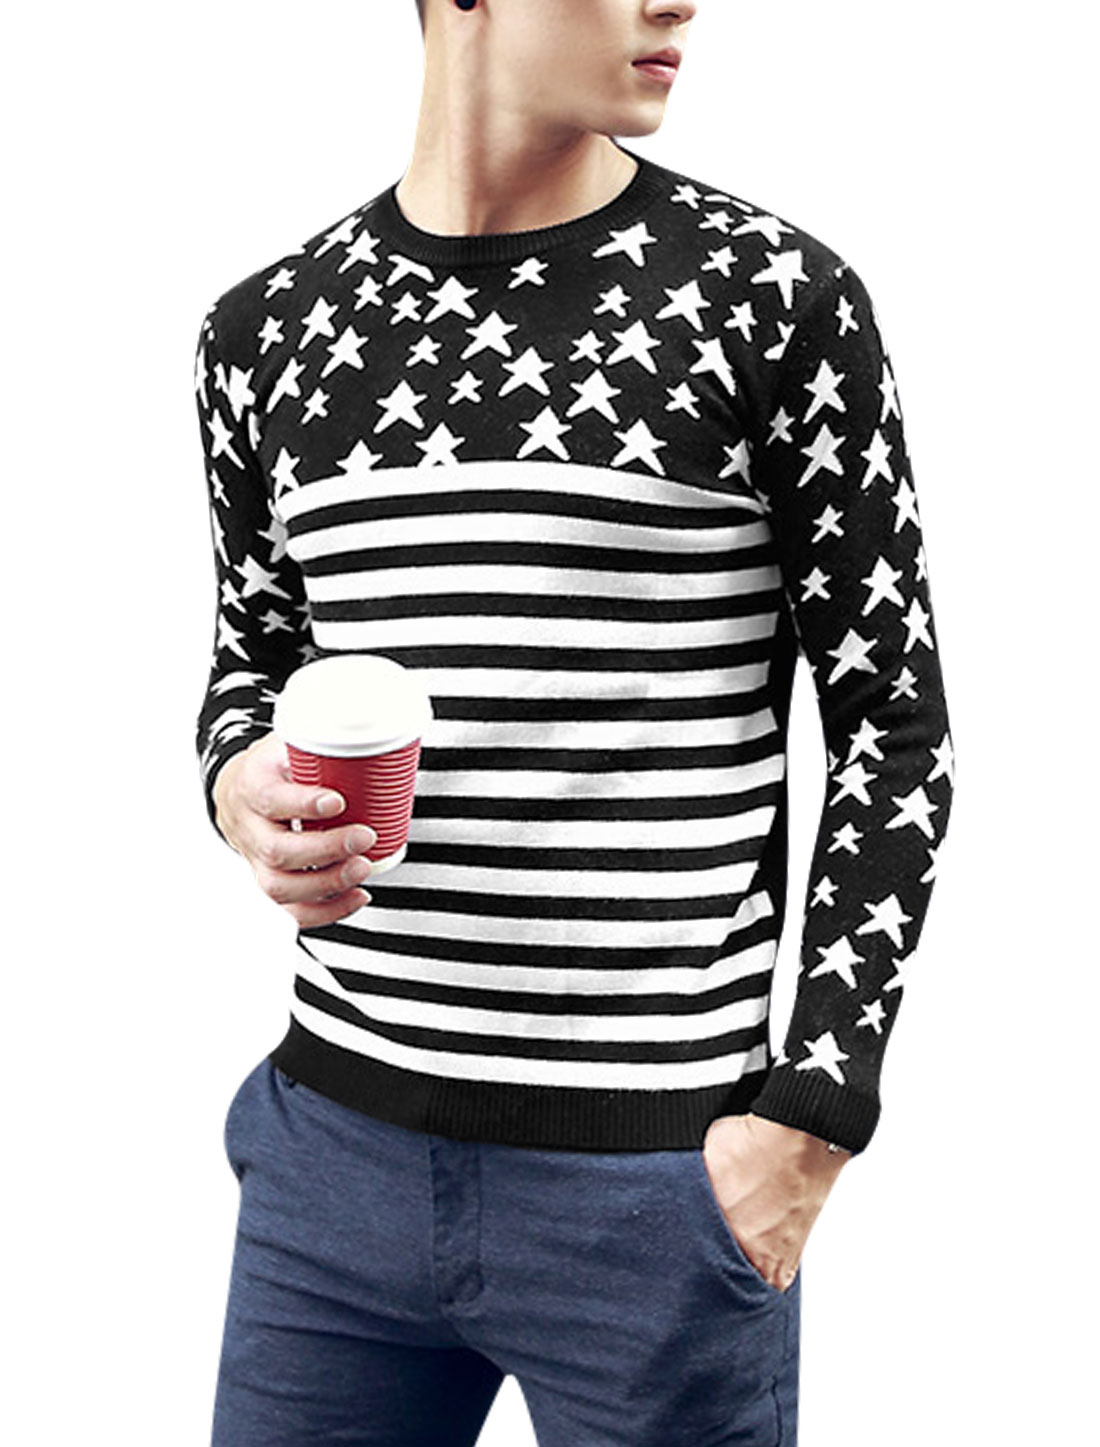 Men Stars Pattern Pullover Long Sleeve Leisure Knit Shirt Black White S